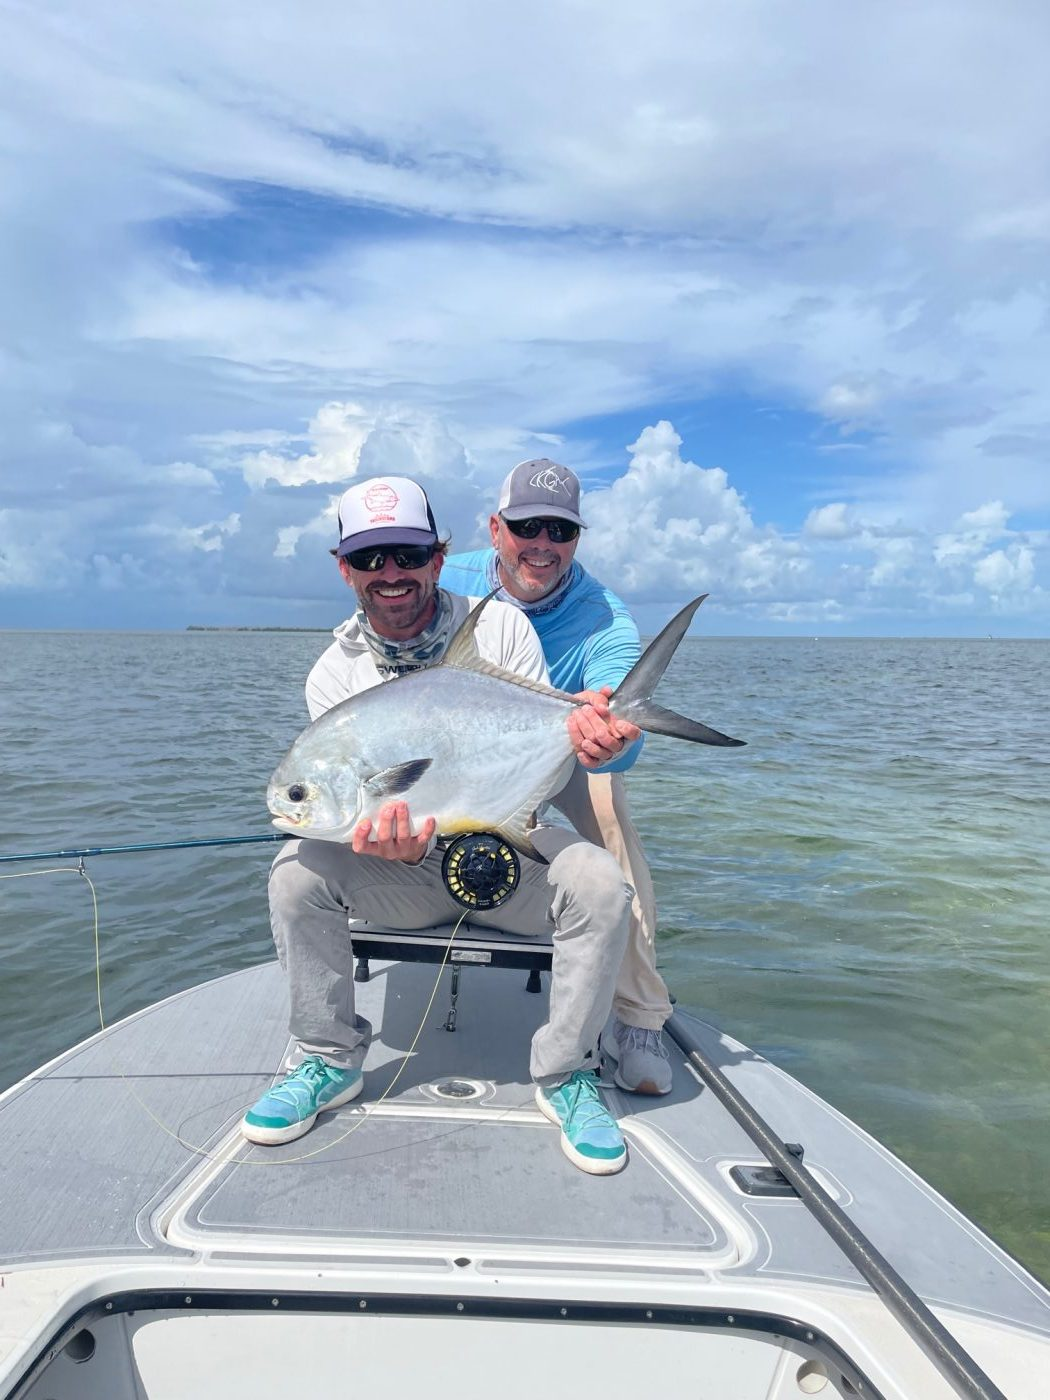 Wes and Scott with a great redemption capture after losing one. Photo Nathaniel Linville, guiding Scott Collins